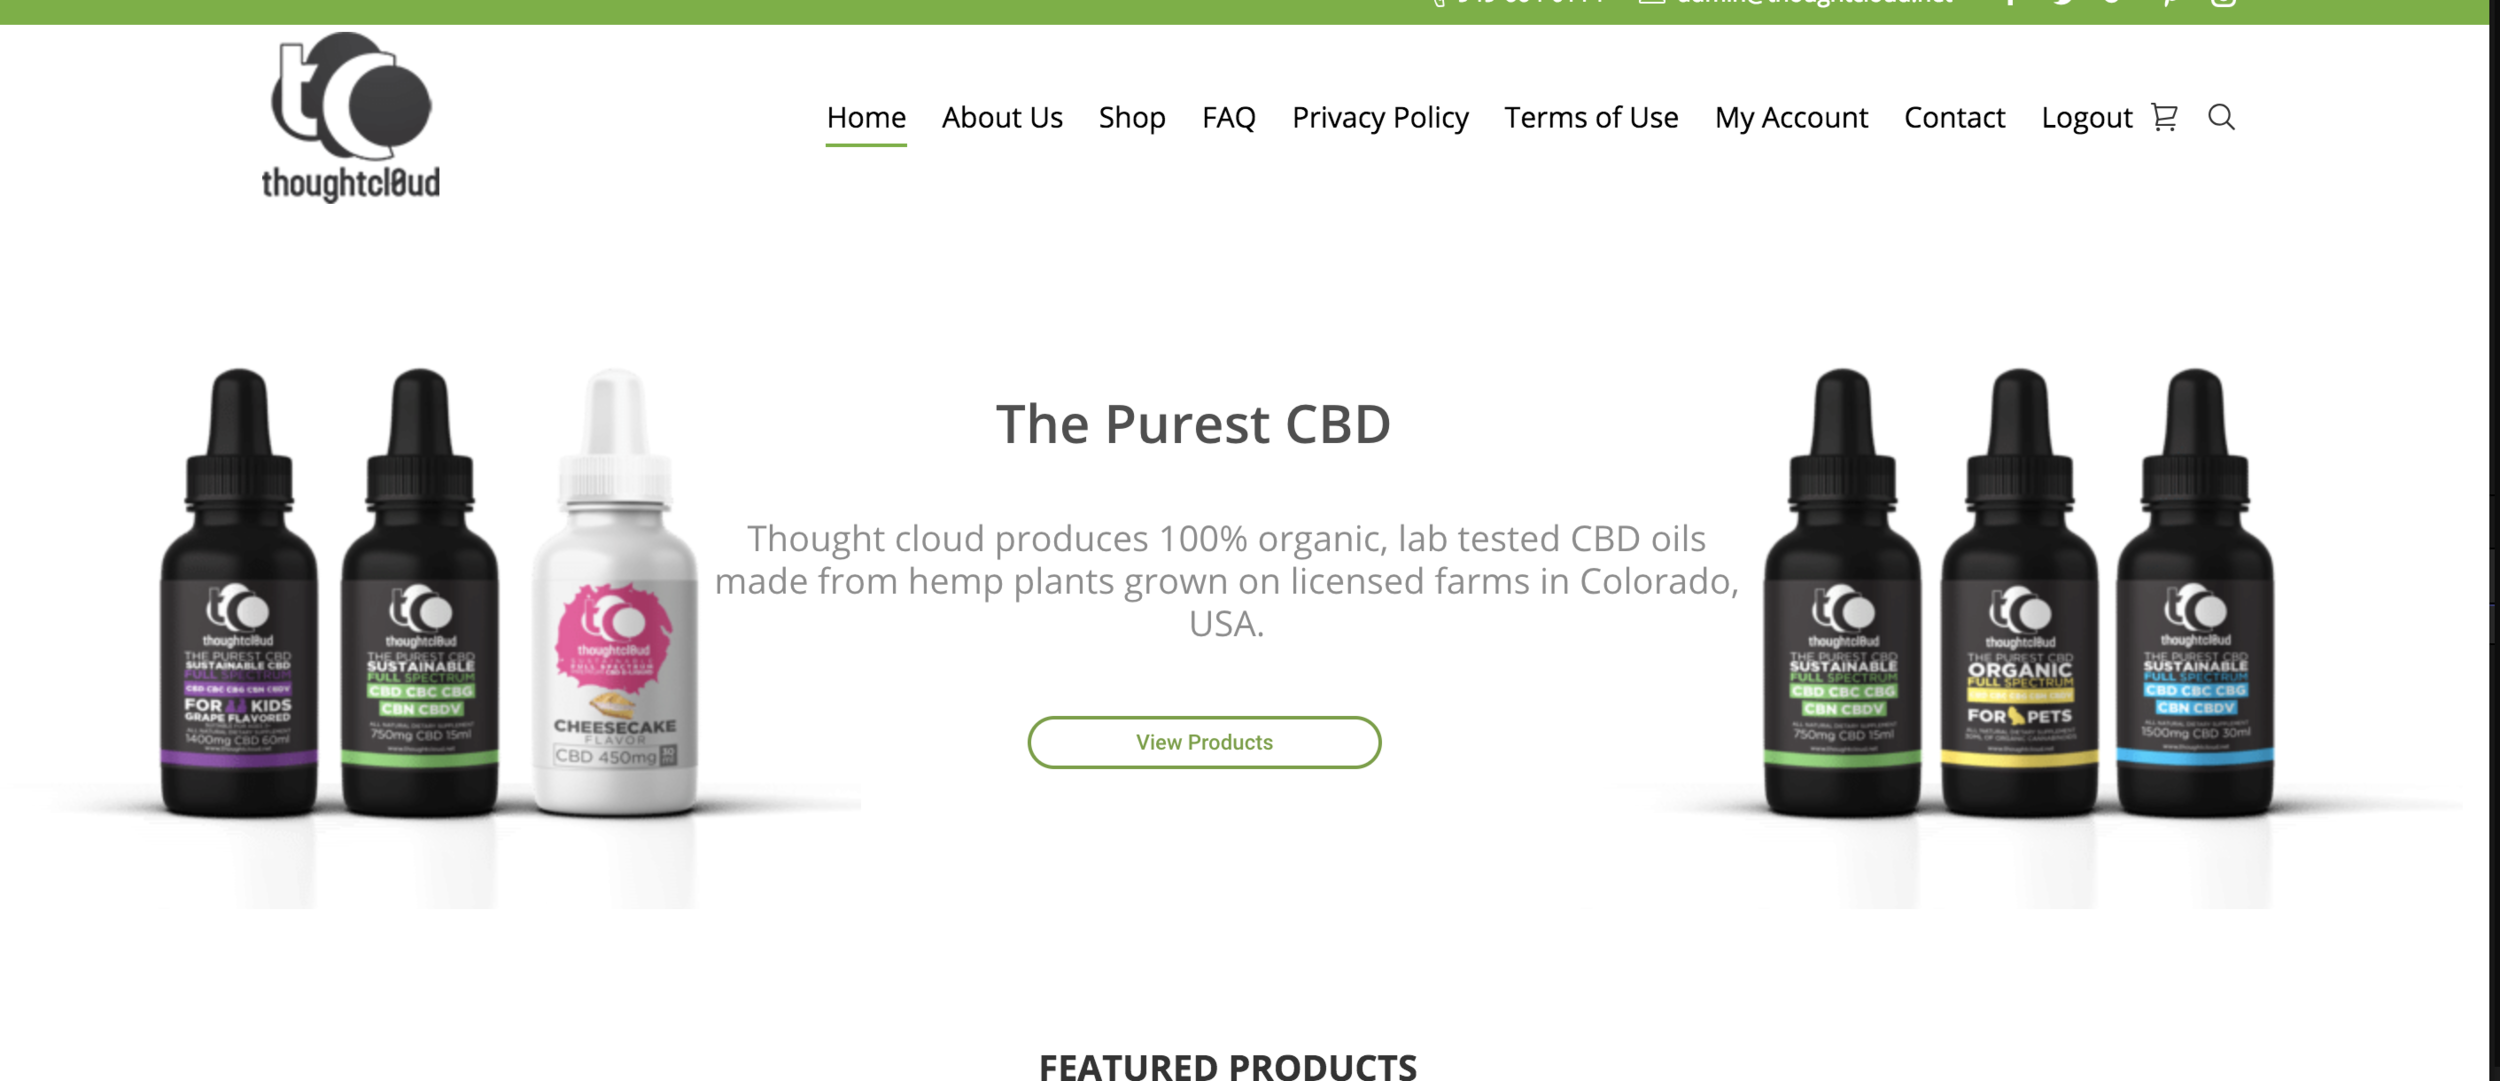 Thoughtcloud is committed to bringing its customers the purest and highest grade CBD products on the planet and are proud to offer all-natural, lab-tested, organic CBD oil for your overall health and wellbeing. Our vision at Thoughtcloud is to produce organically sustainable plant medicine that will promote an enhanced metabolic homeostasis, improved immune function, and assist in enhancing mental well-being. Overall system-wide treatment at the level of the chromosome is the focus with Thoughtcloud CBD. We focus on treating the system and not the symptoms. Check it out  here